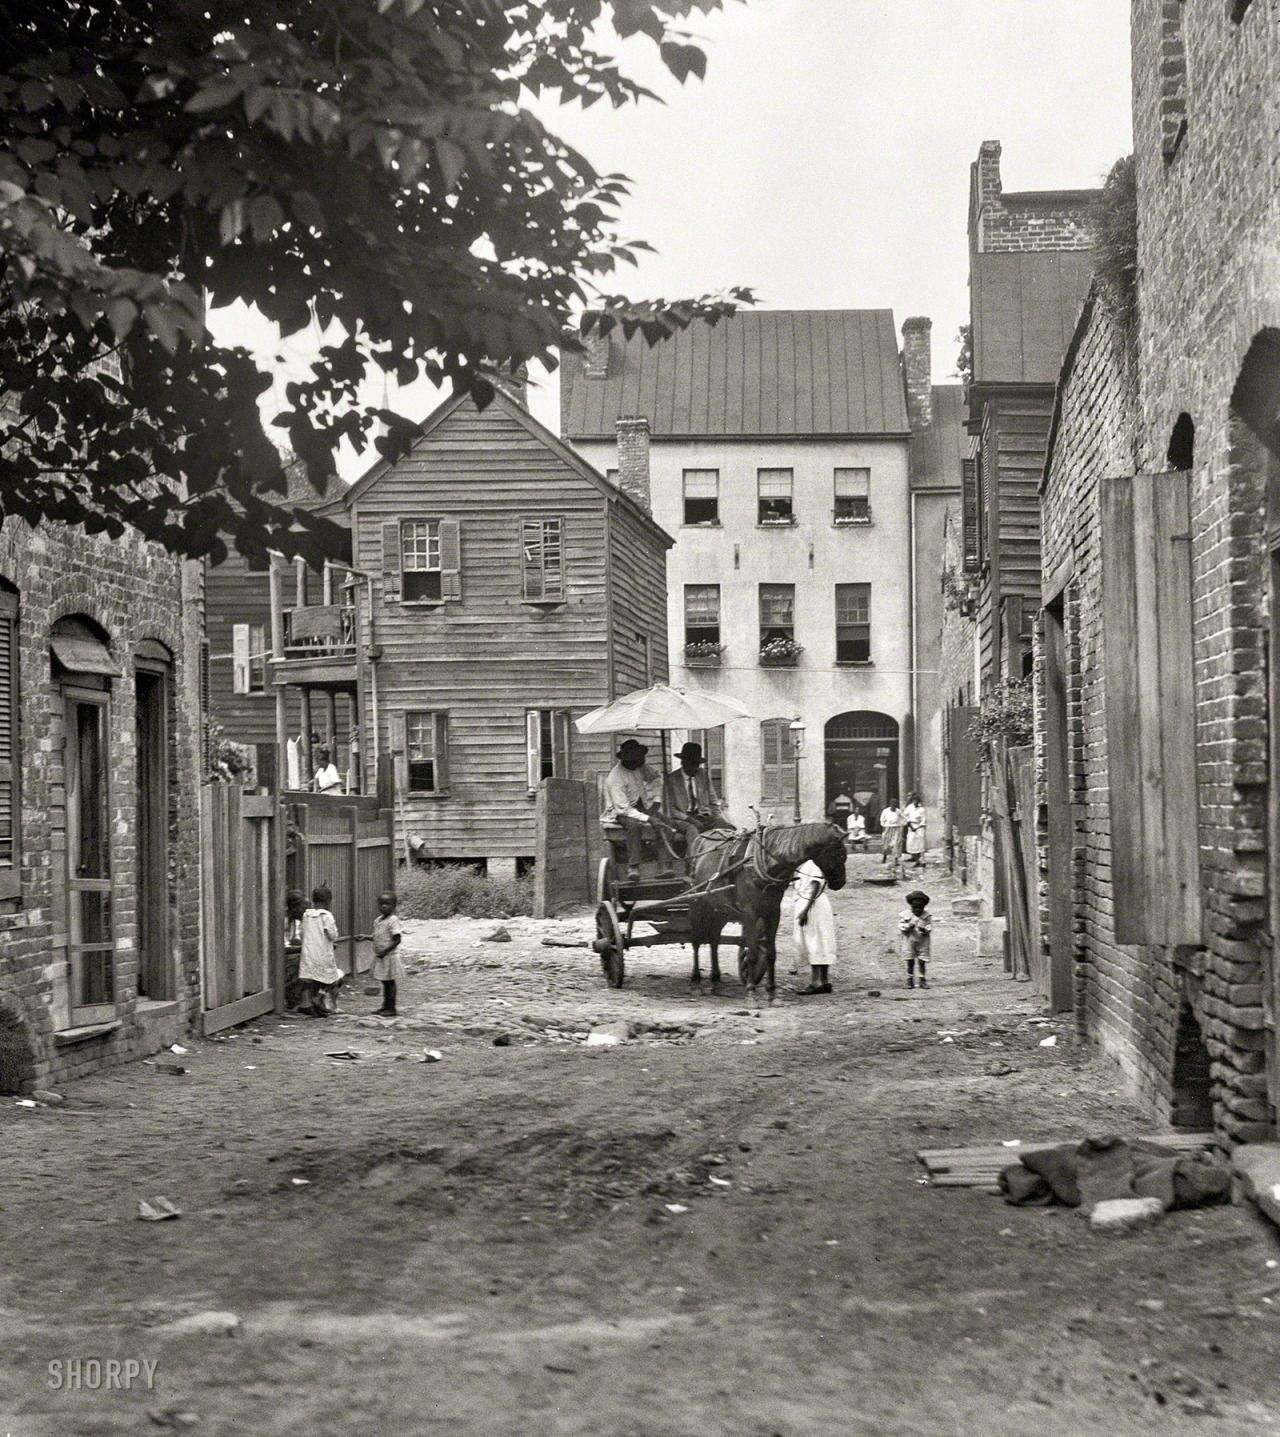 """Charleston, South Carolina, circa 1920. """"Street scene with horse and wagon."""" 4x5 inch nitrate negative by Arnold Genthe (via Shorpy Historical Photo Archive :: Gaslight Alley: 1920)"""